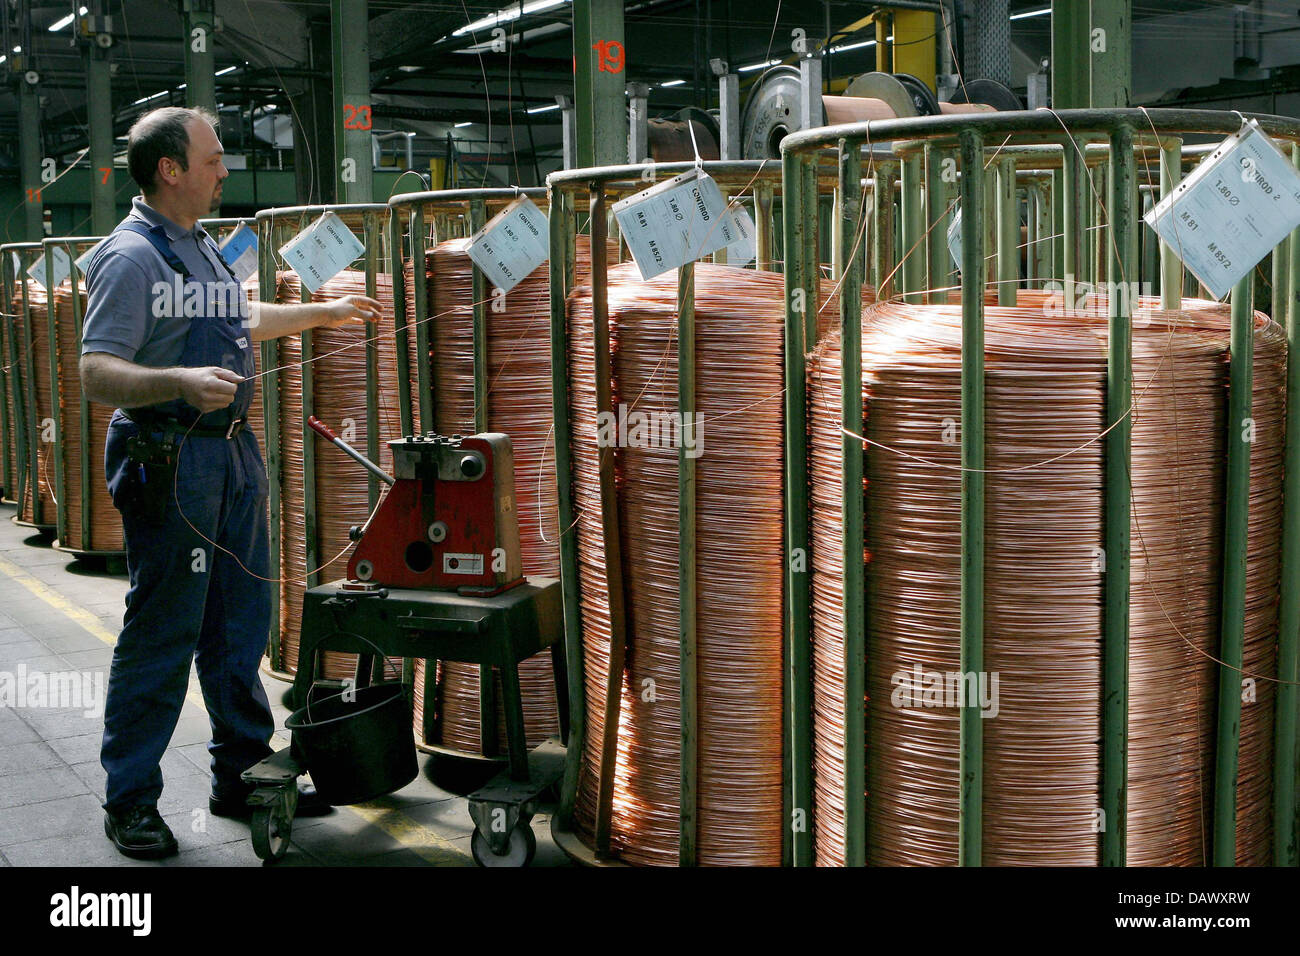 Copper wire spindles wait for furtgher processing at LEONI